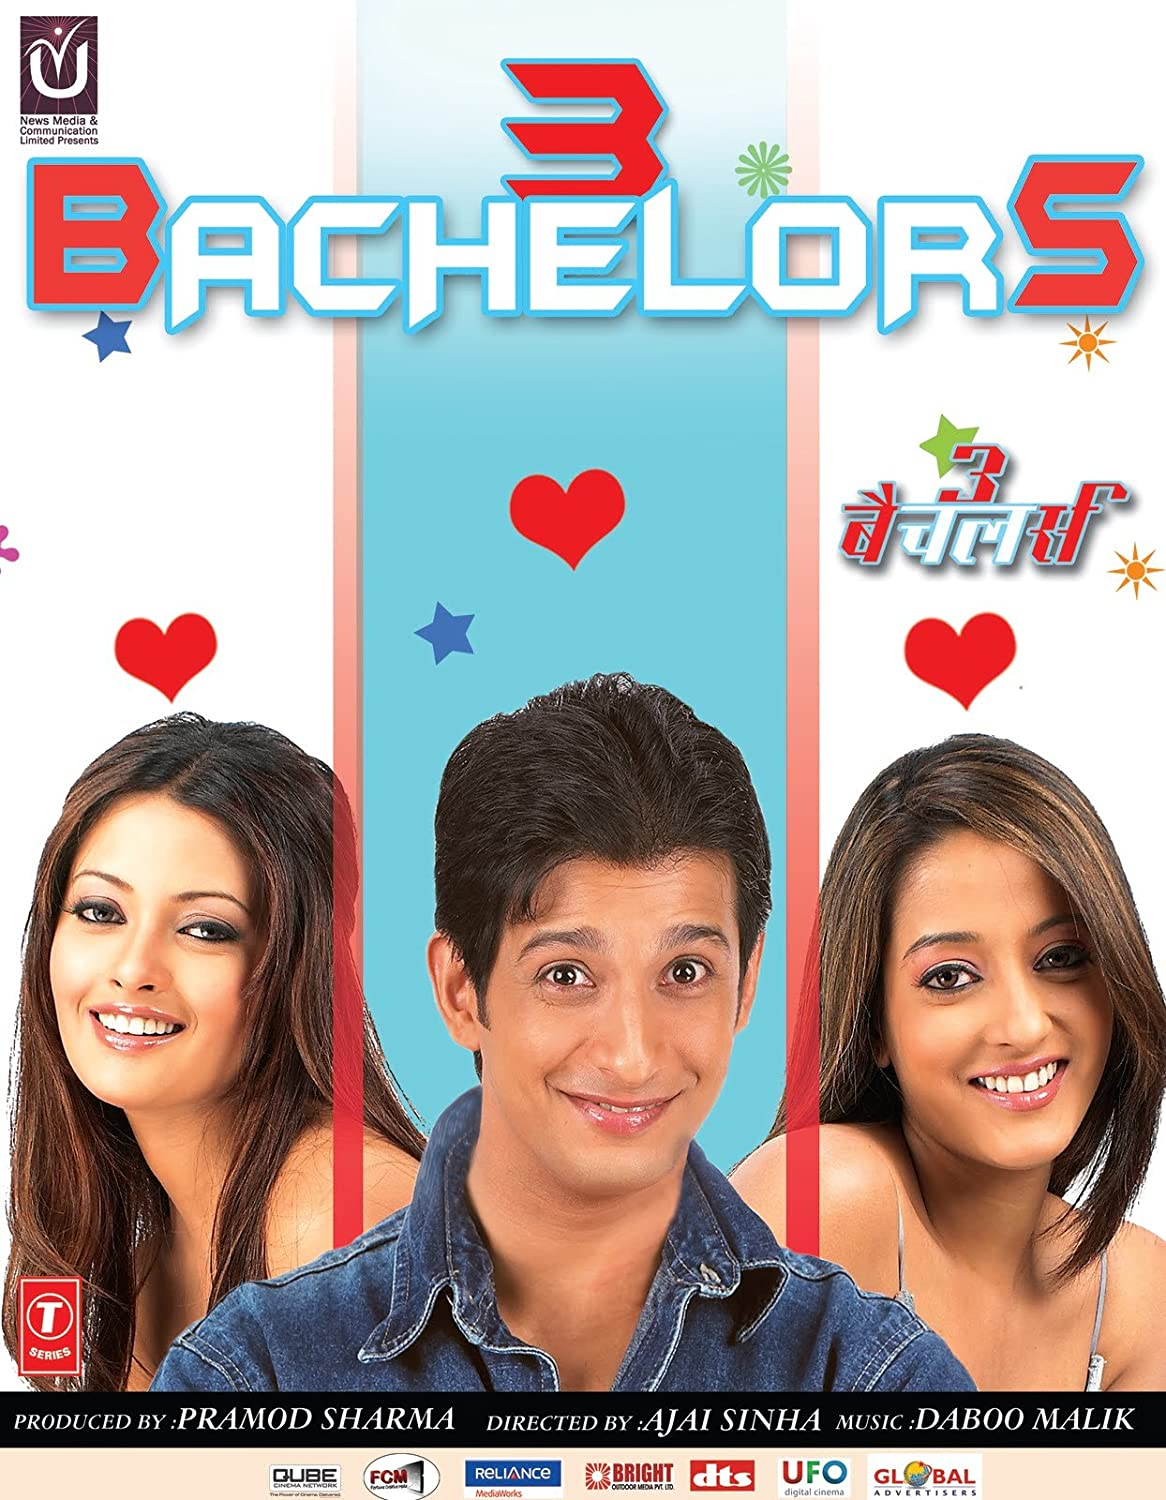 Free Download 3 Bachelors (2012) Bollywood Movie 720p HDRip 600MB Download On Mp4moviez Fliz Movies